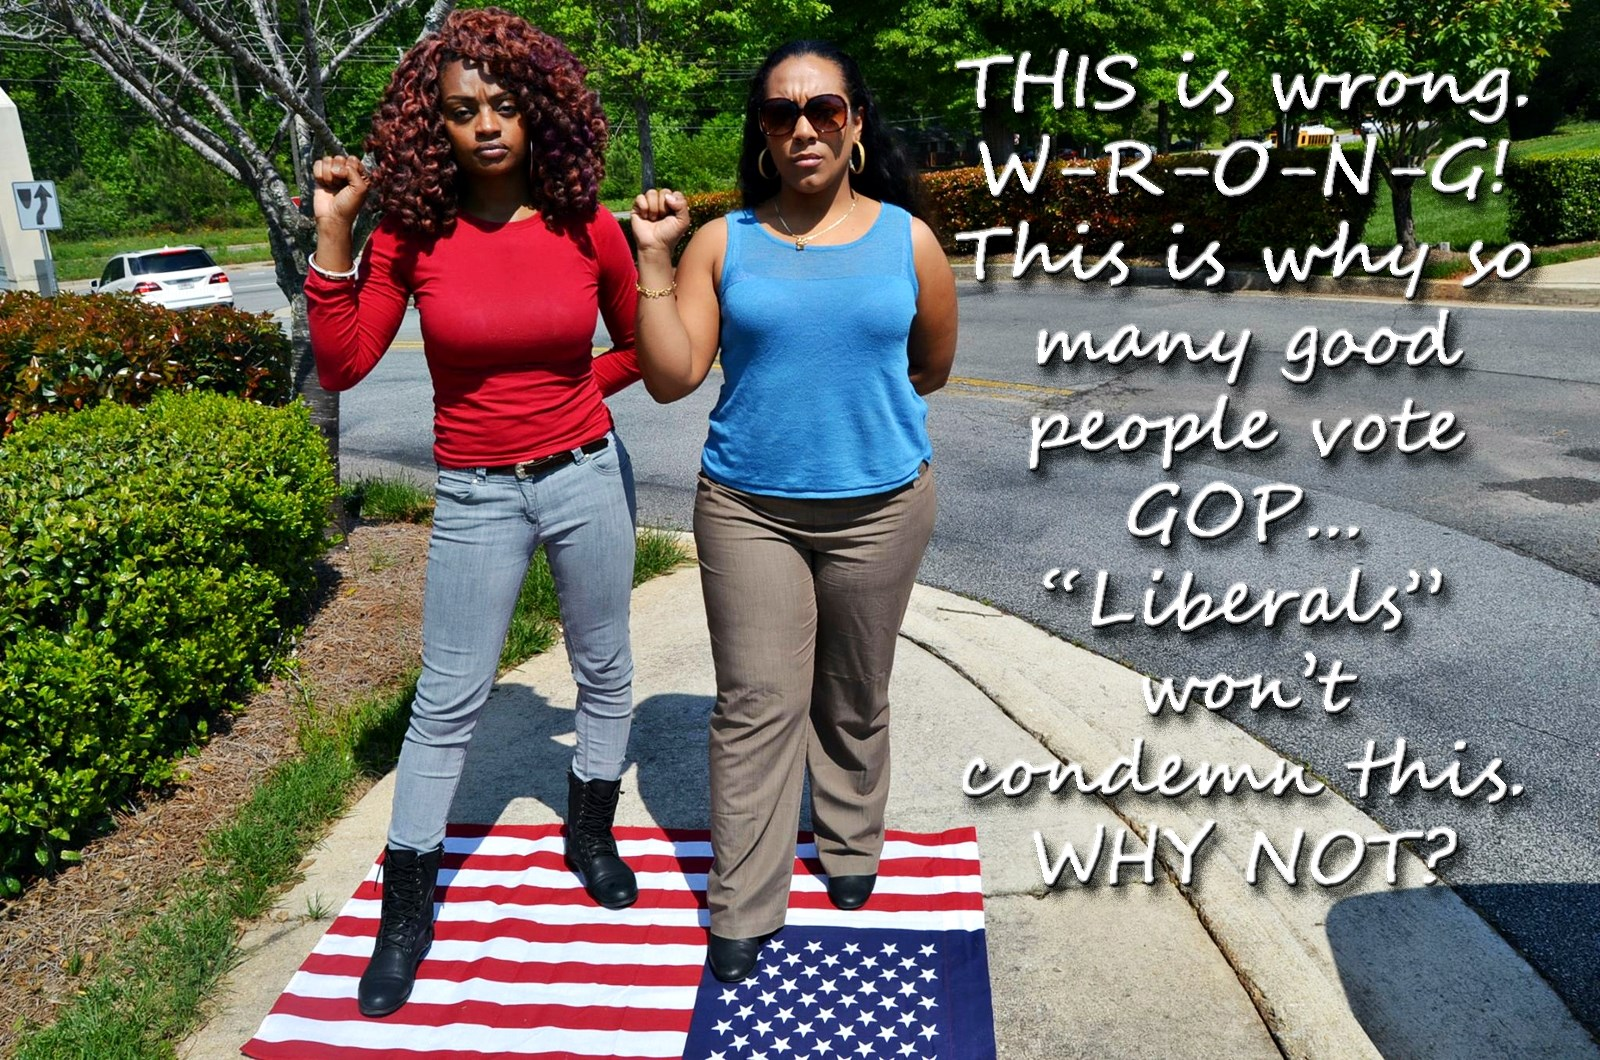 00 usa stepping on the flag is no good 270815